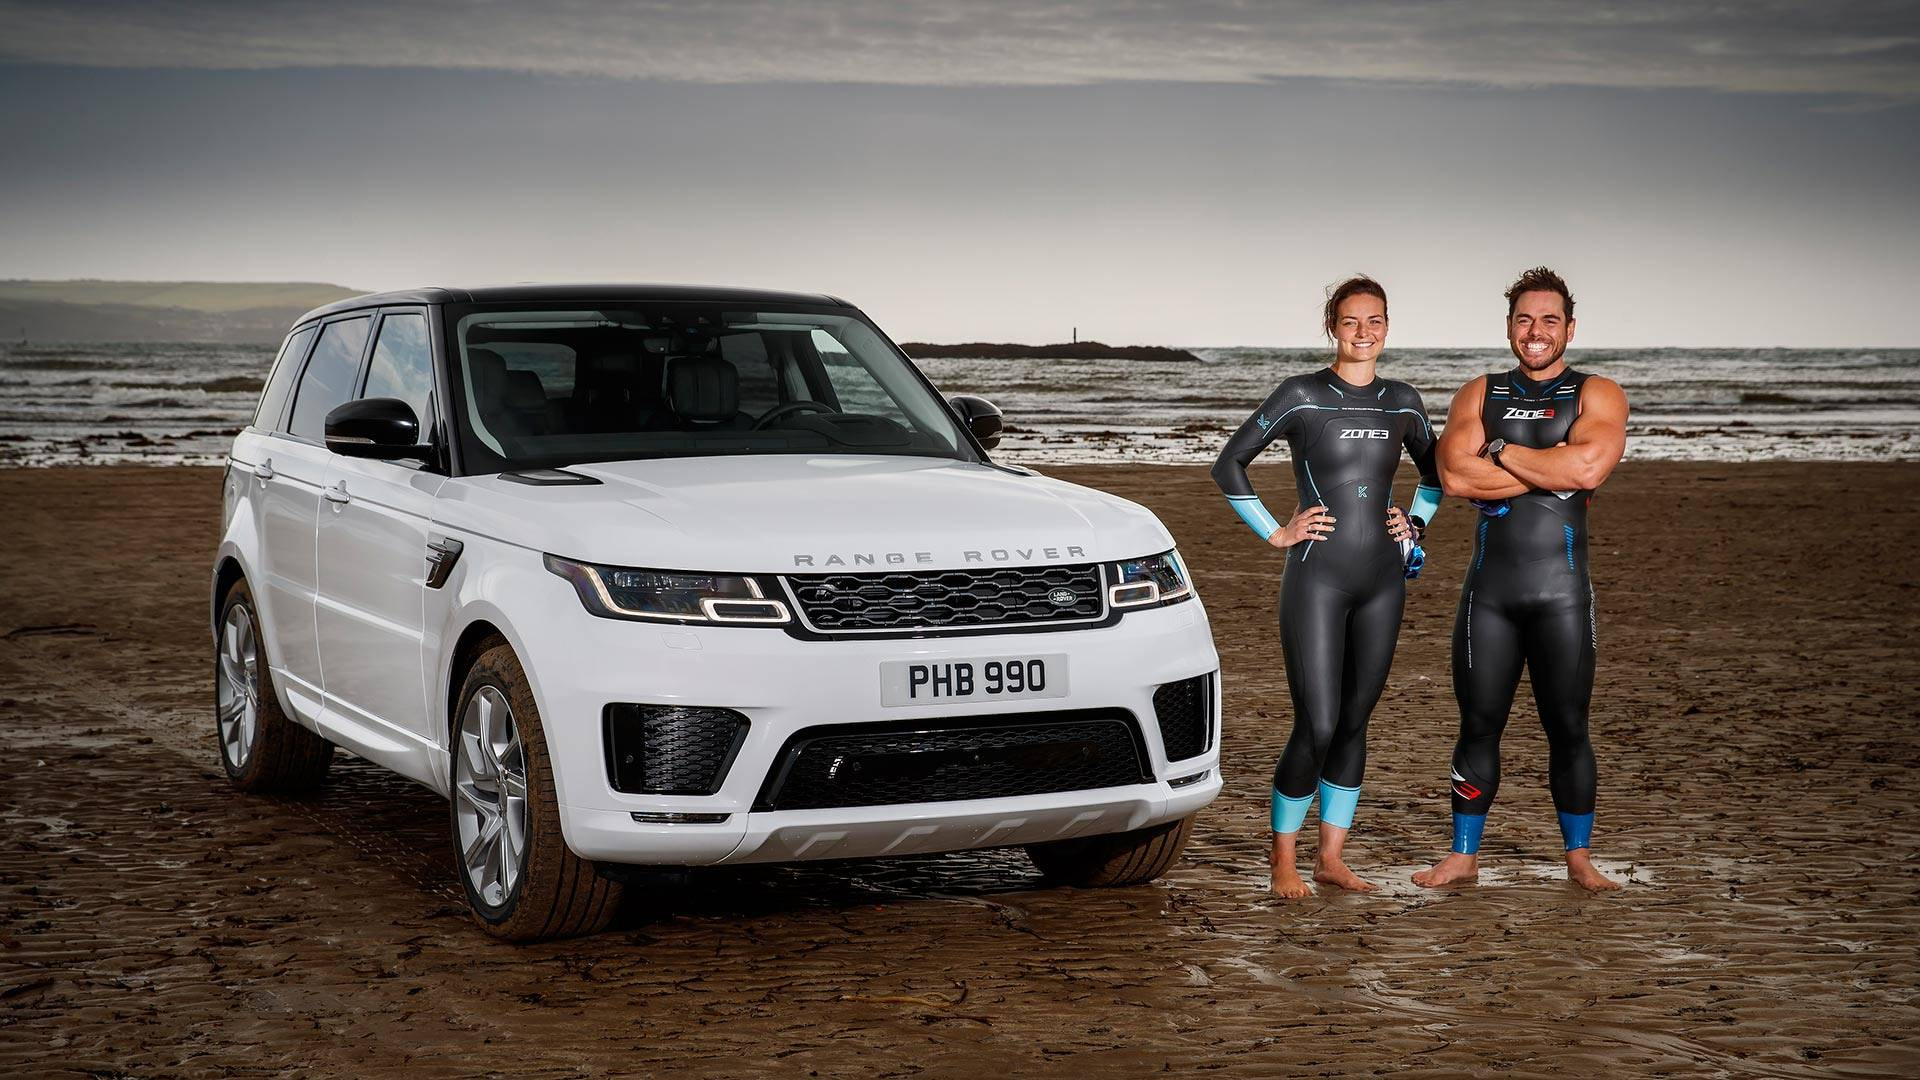 Range Rover Sport Phev Wades Into The Sea Races Pro Swimmers